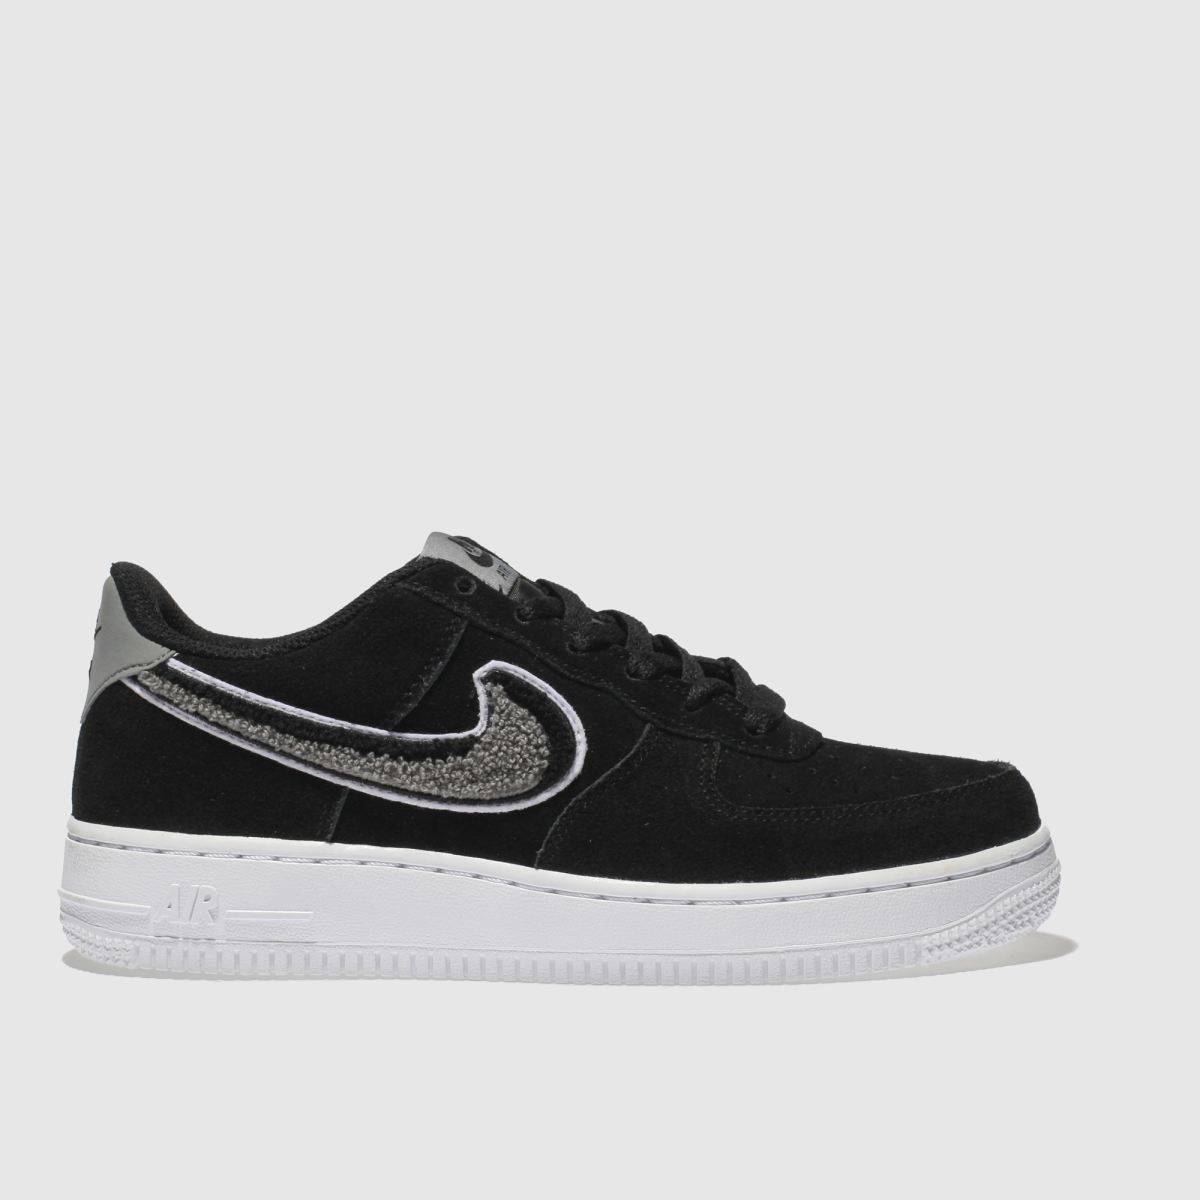 Nike Black & White Air Force 1 Lv8 Unisex Youth Youth